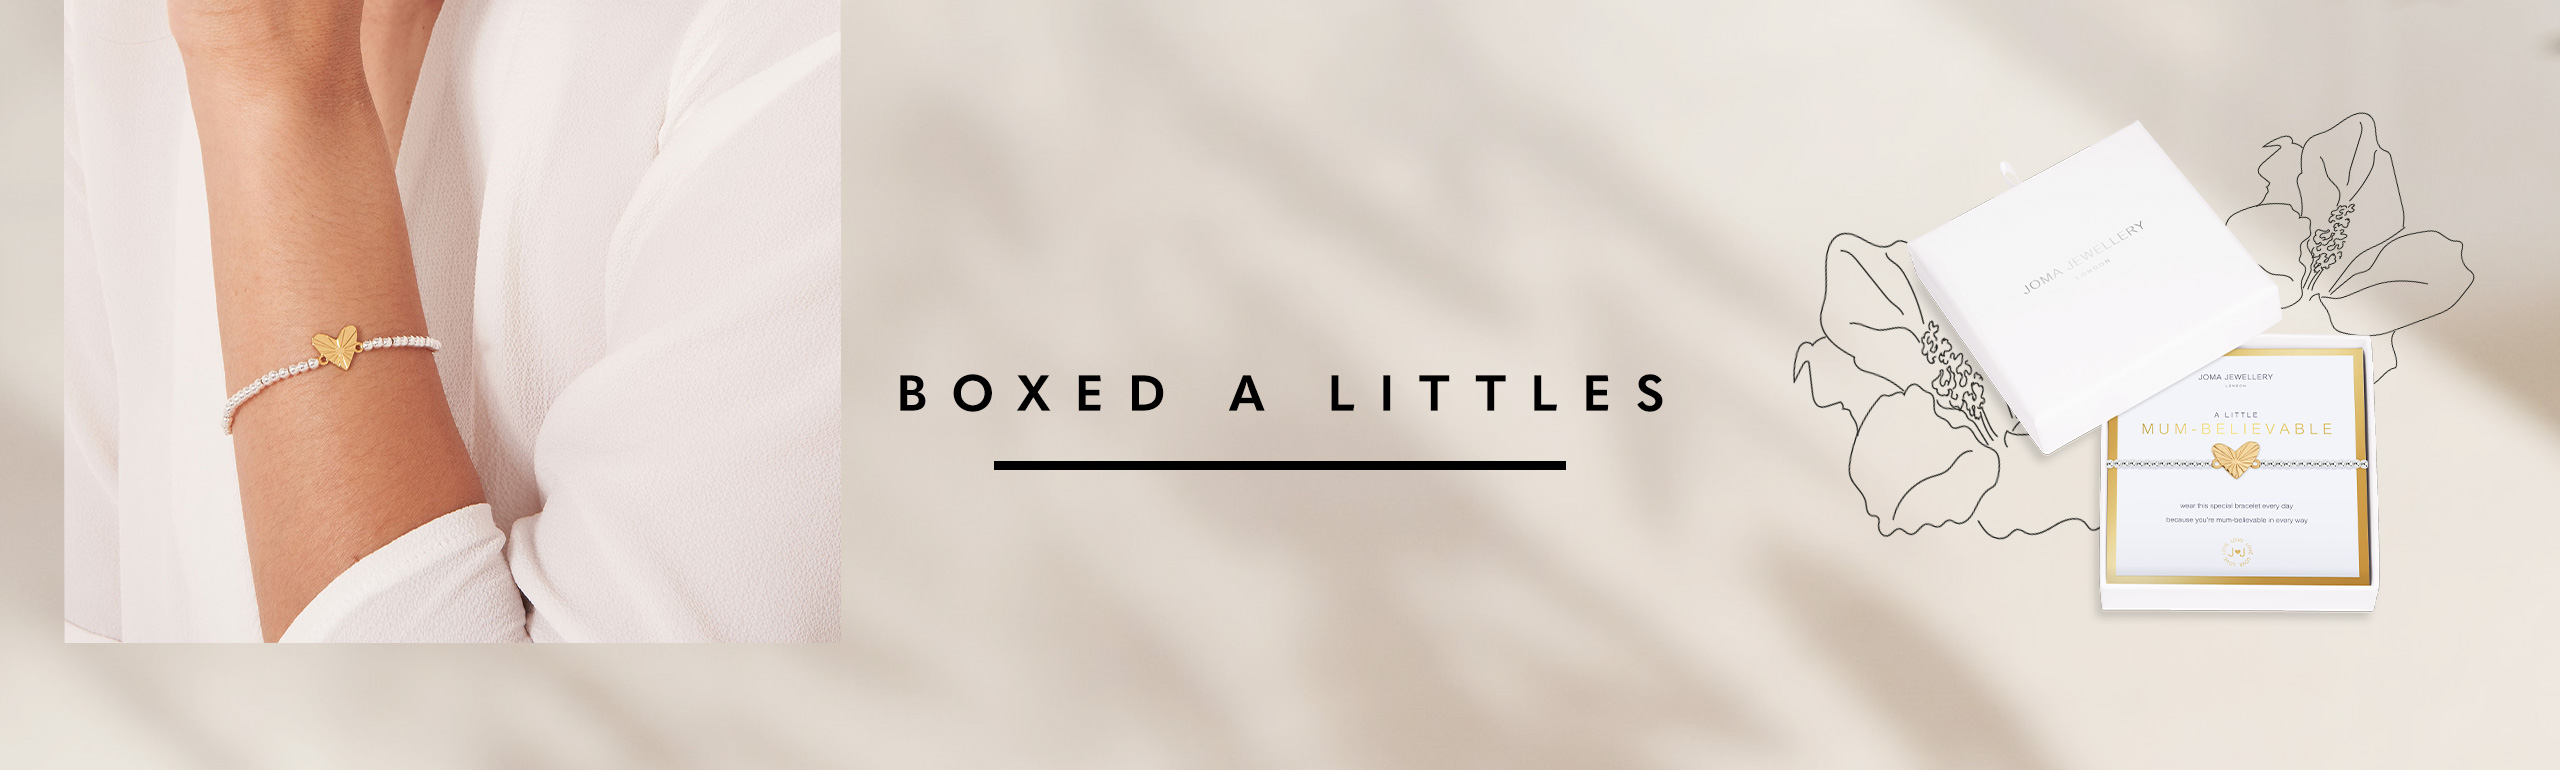 Boxed A Littles